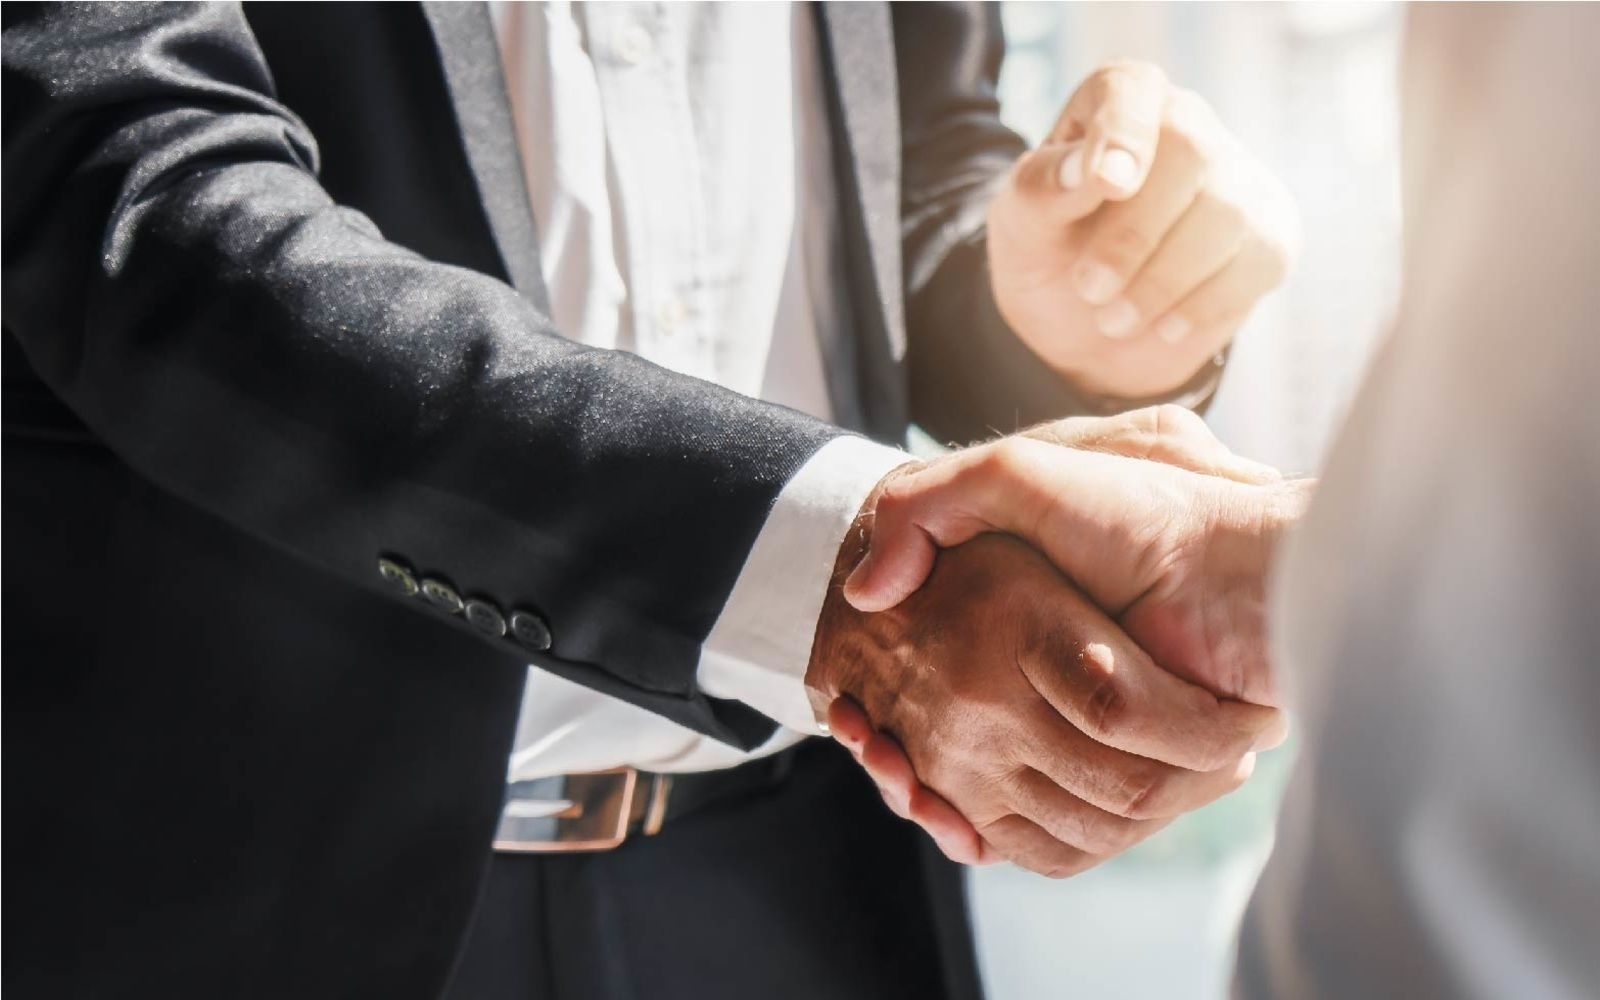 'A Deal Is A Deal' When Builders Abide By A Contract, No Matter What